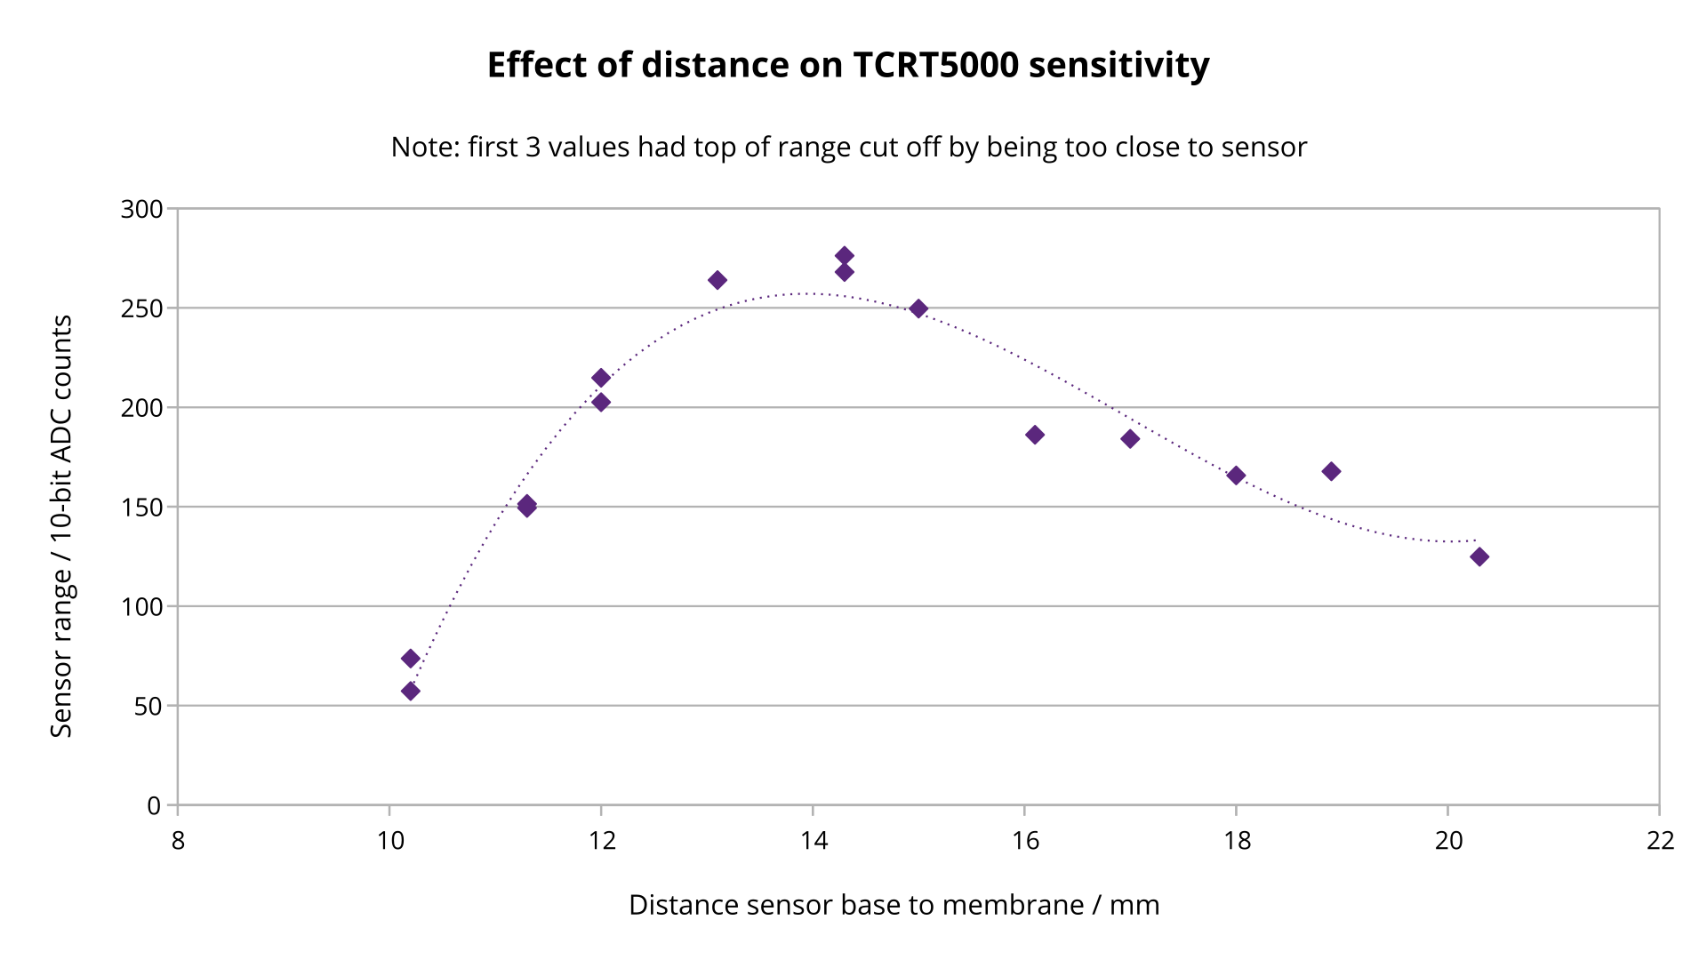 Better graph than before showing range of breath sensor going from 50 ADC counts when the sensor is close to the membrane, up to 270 at 14mm, then decreasing again